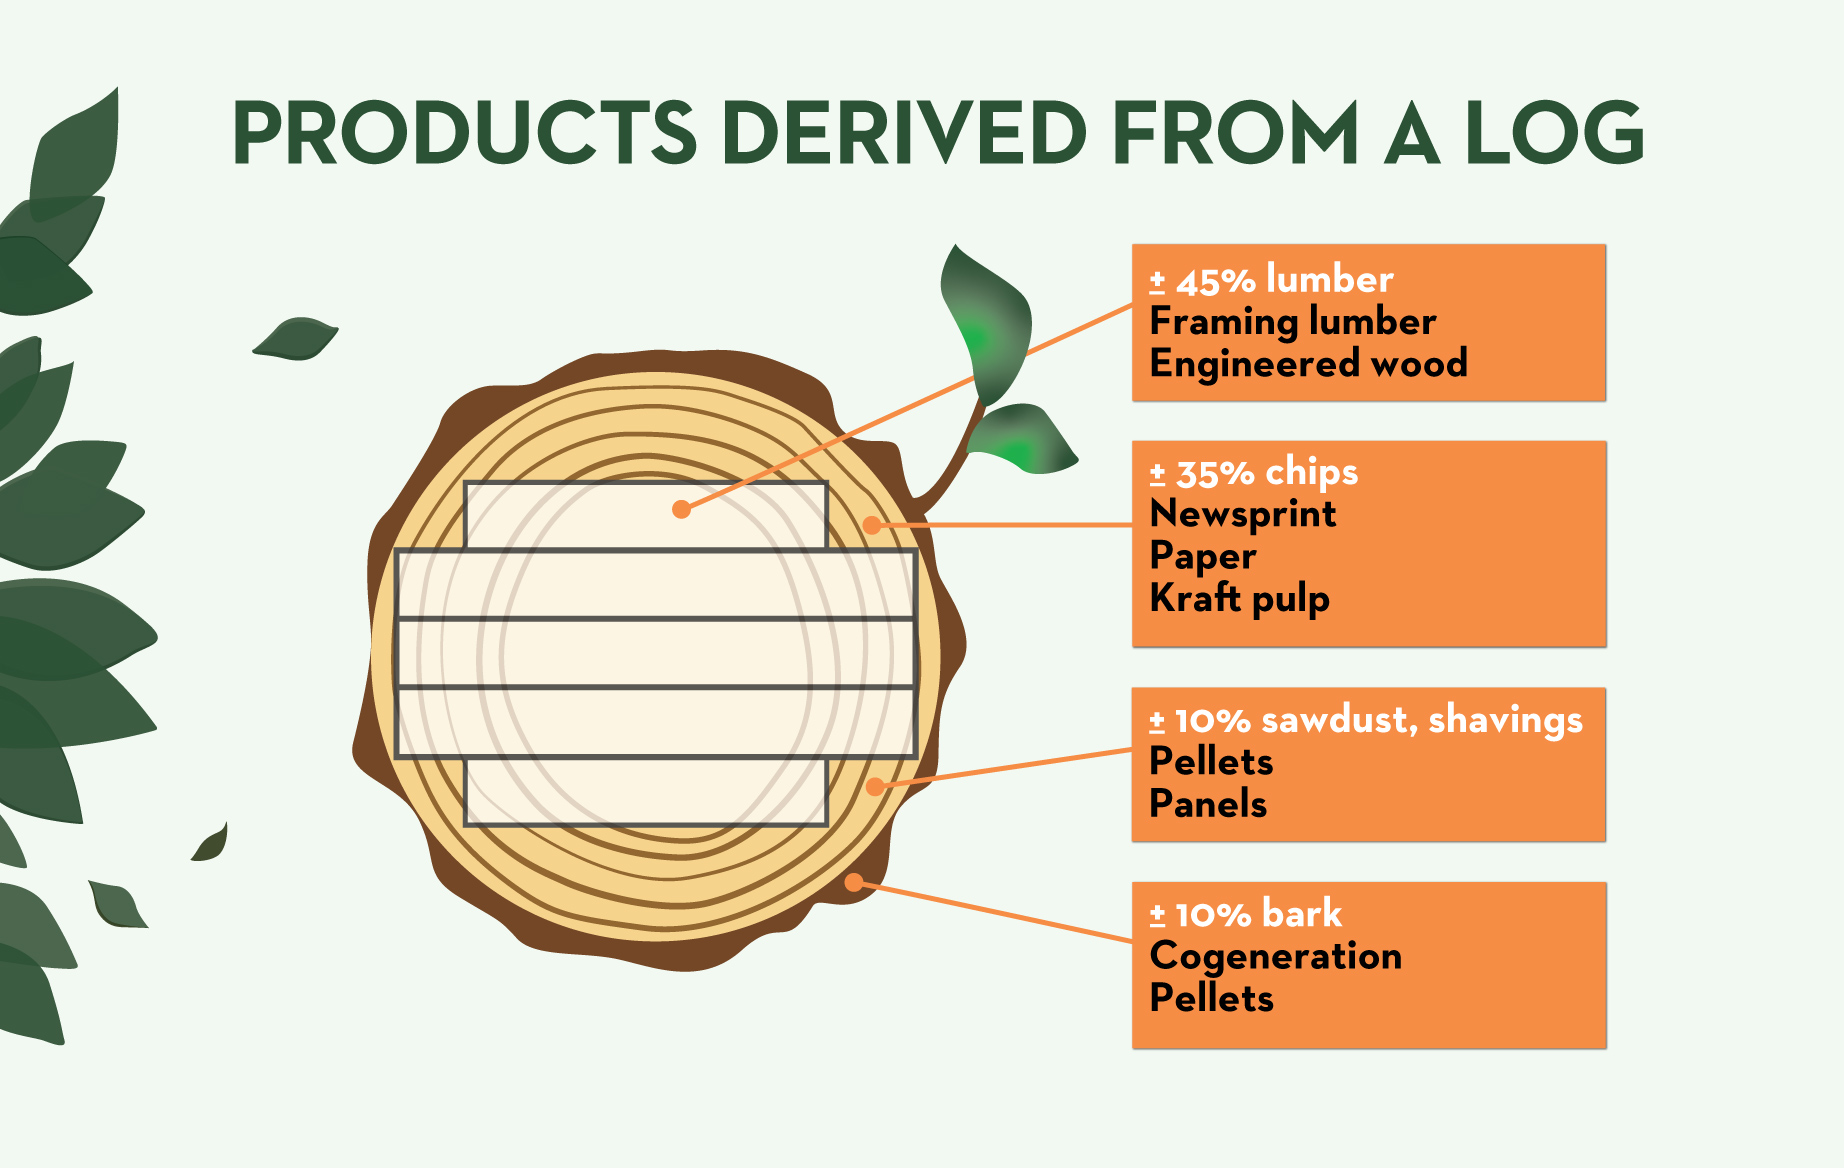 Products Derived From A Log